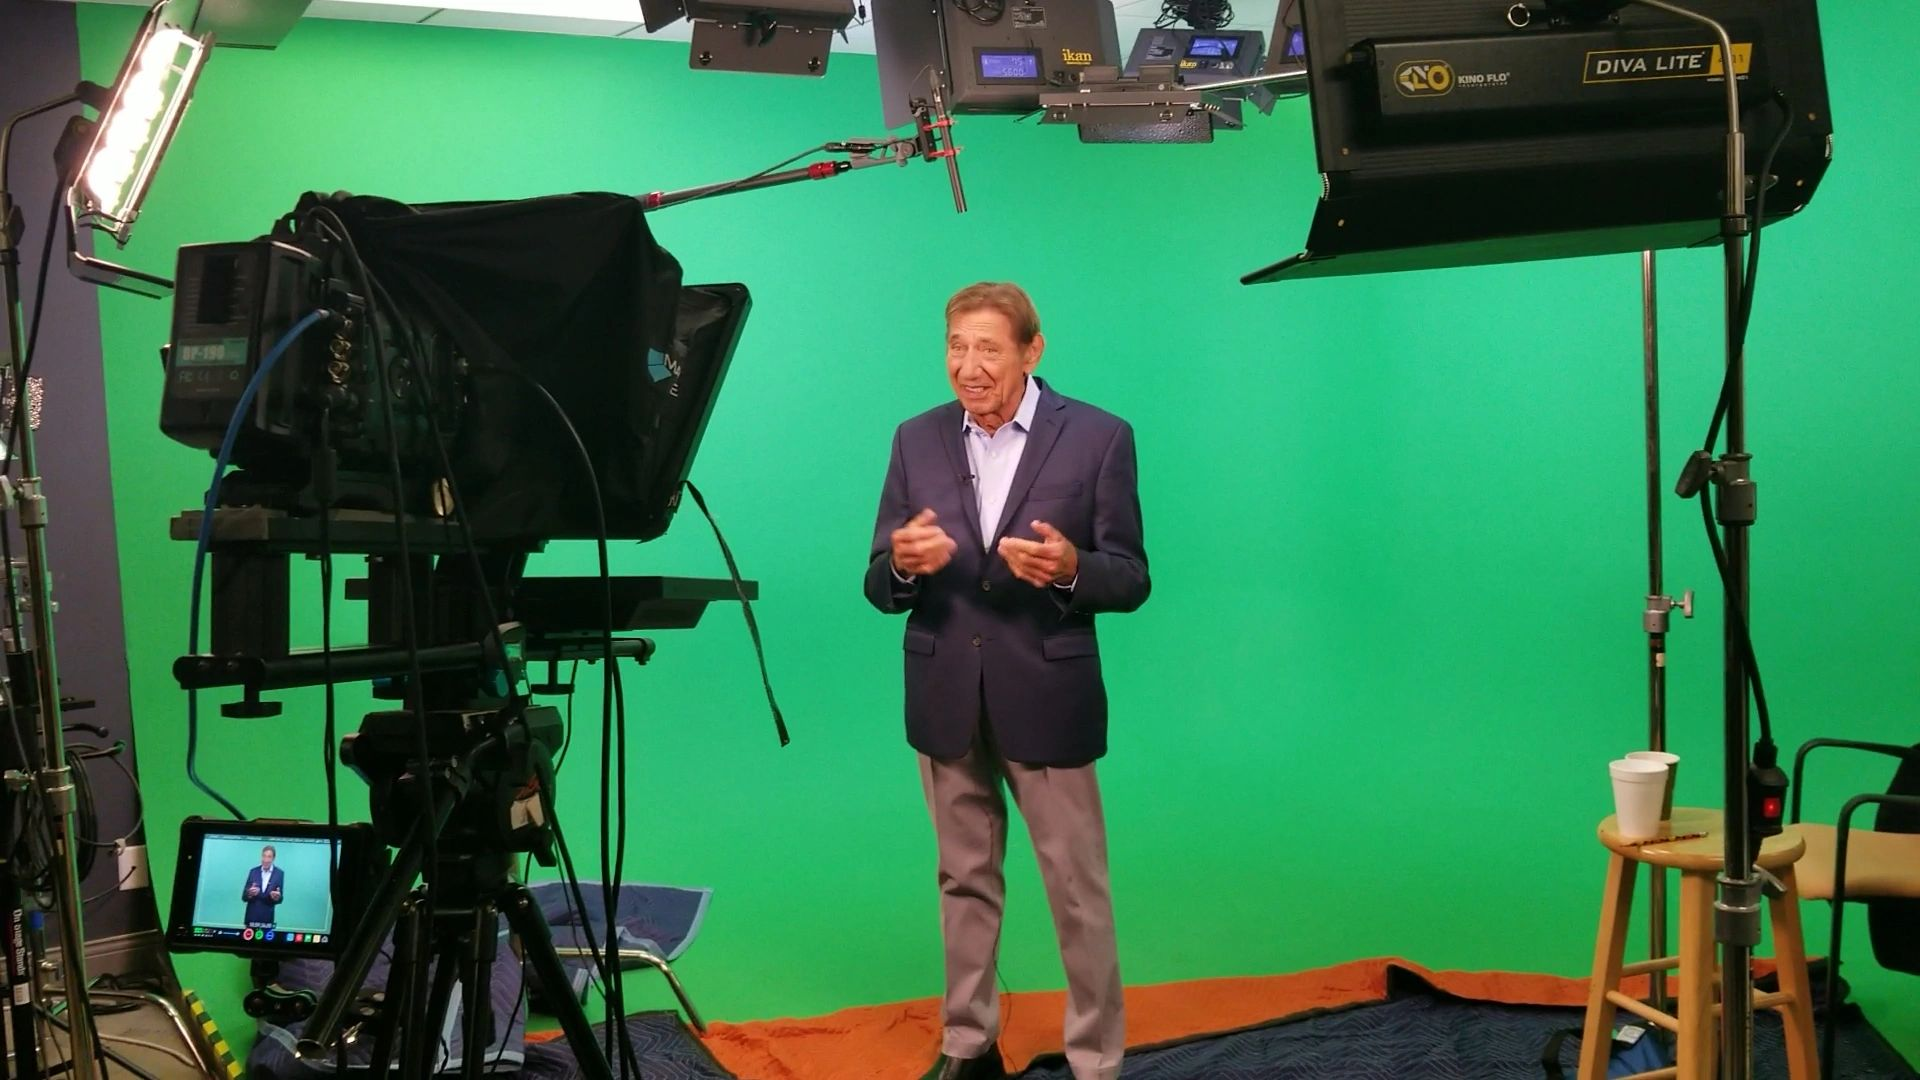 green screen studio tv commercial broadcast video production company Florida service videographer